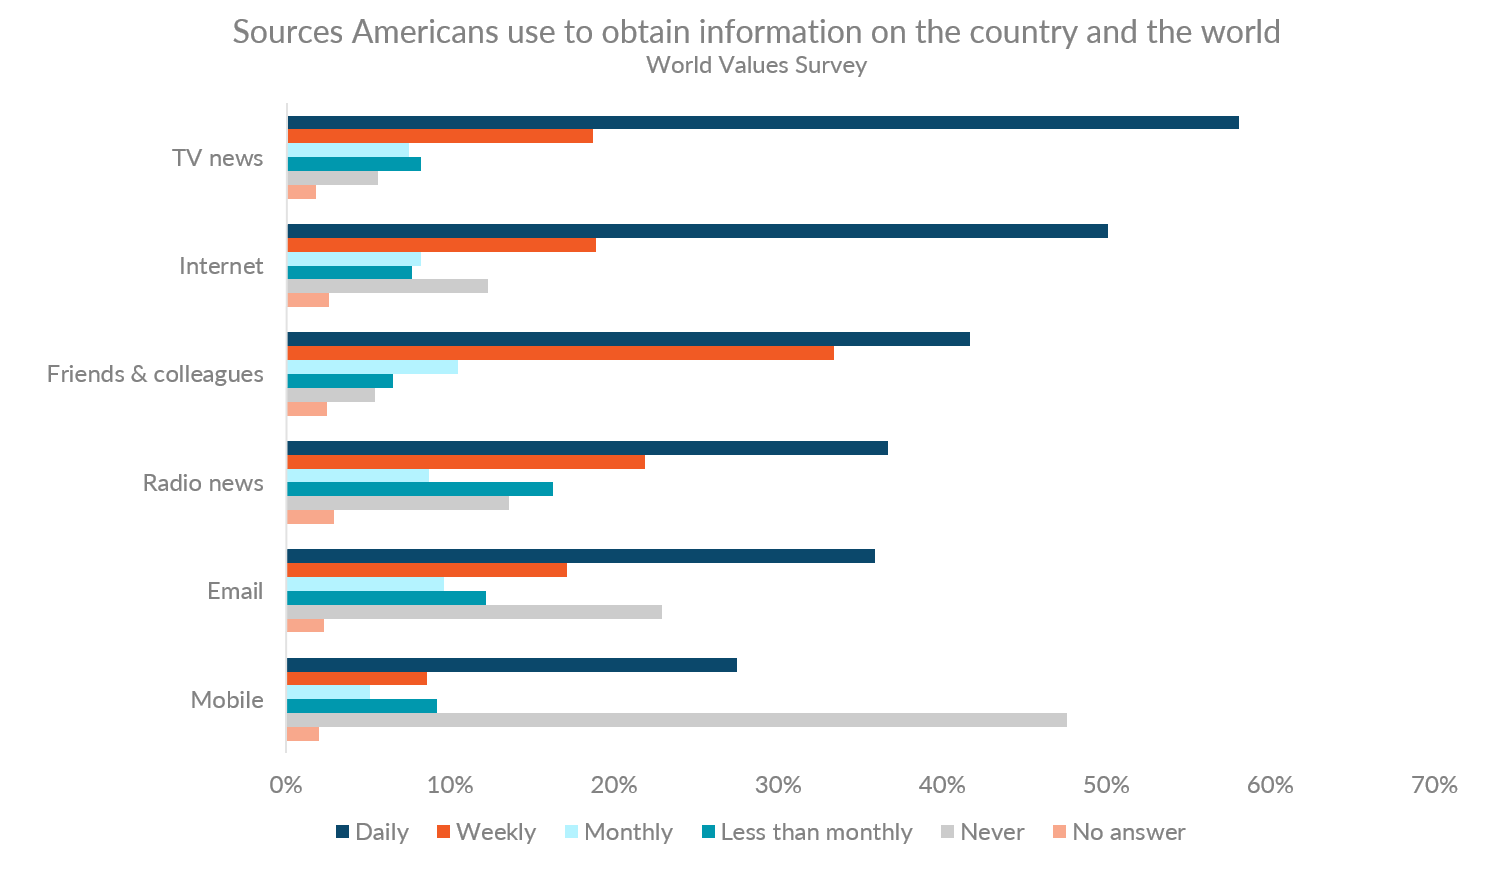 Graph showing the ways that Americans obtain information about the country and world